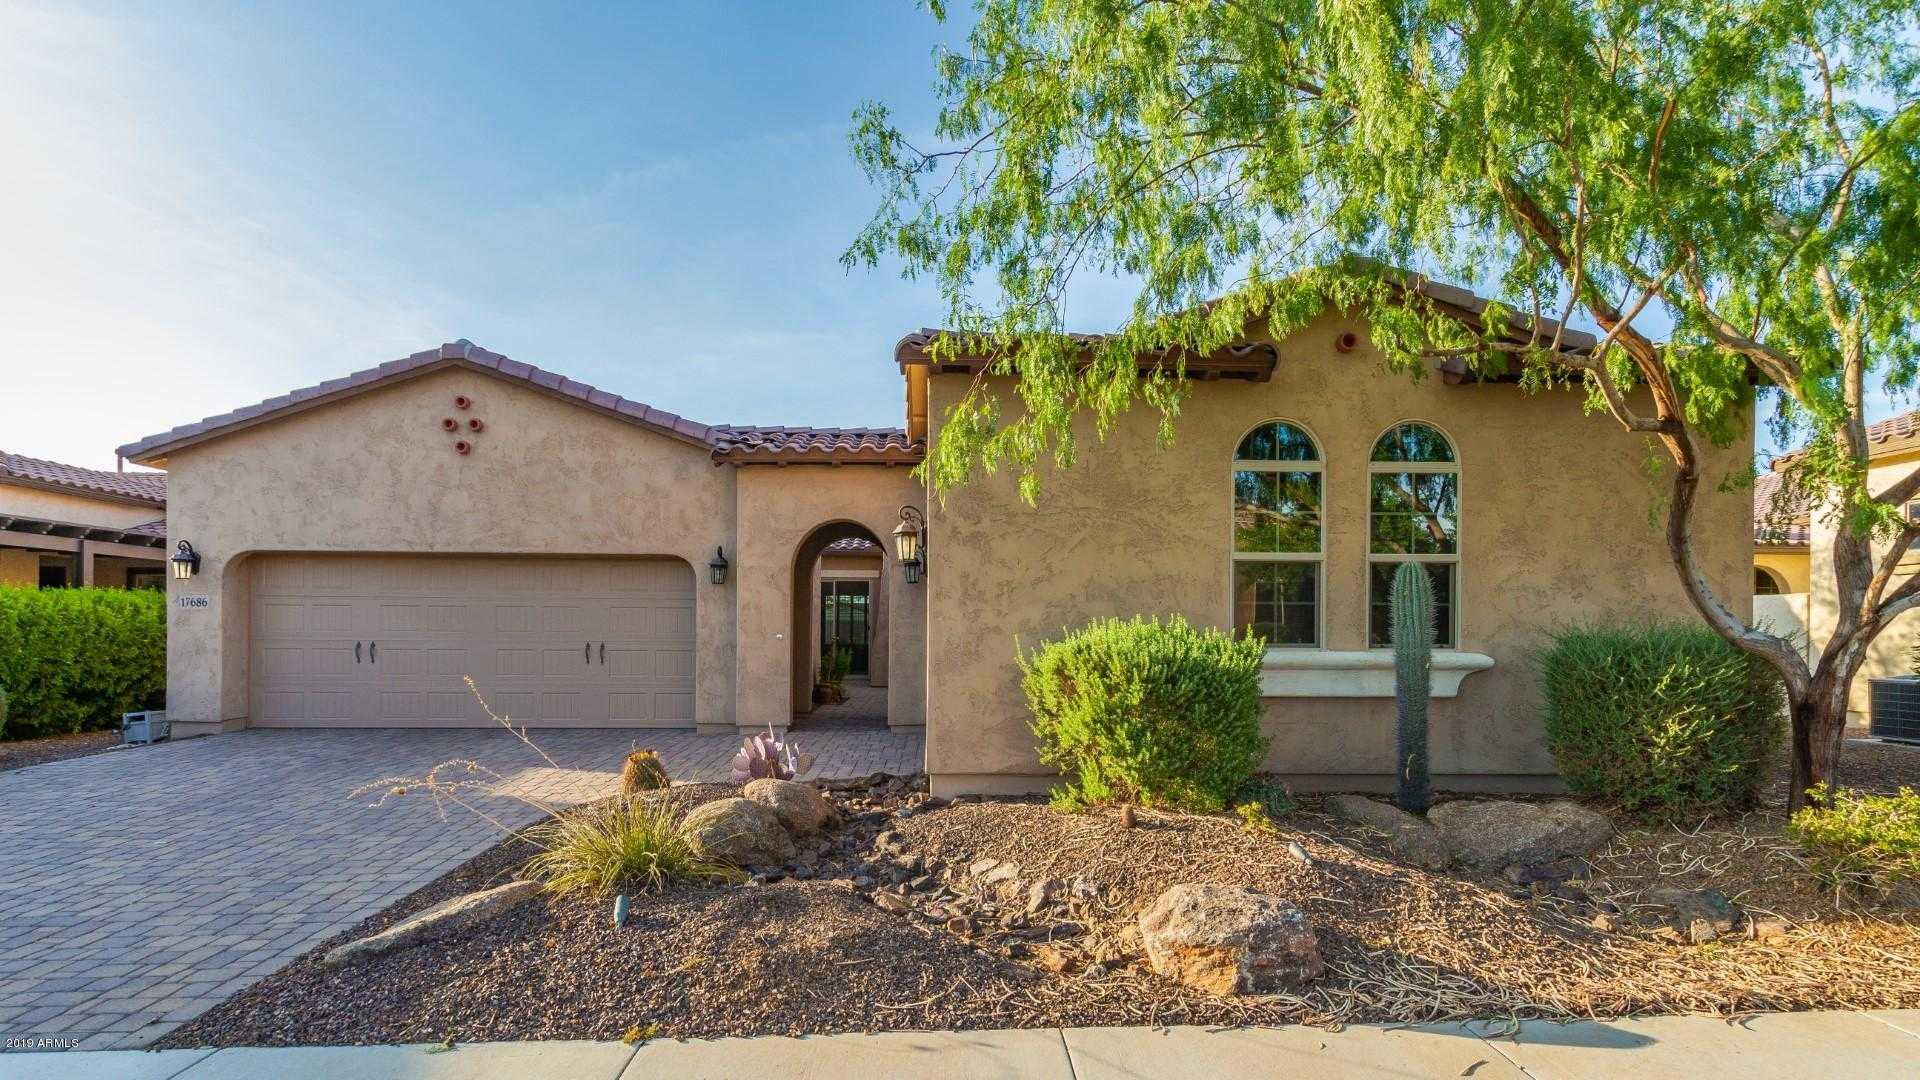 $335,000 - 2Br/2Ba - Home for Sale in Province At Estrella Mountain Ranch Parcel 9, Goodyear